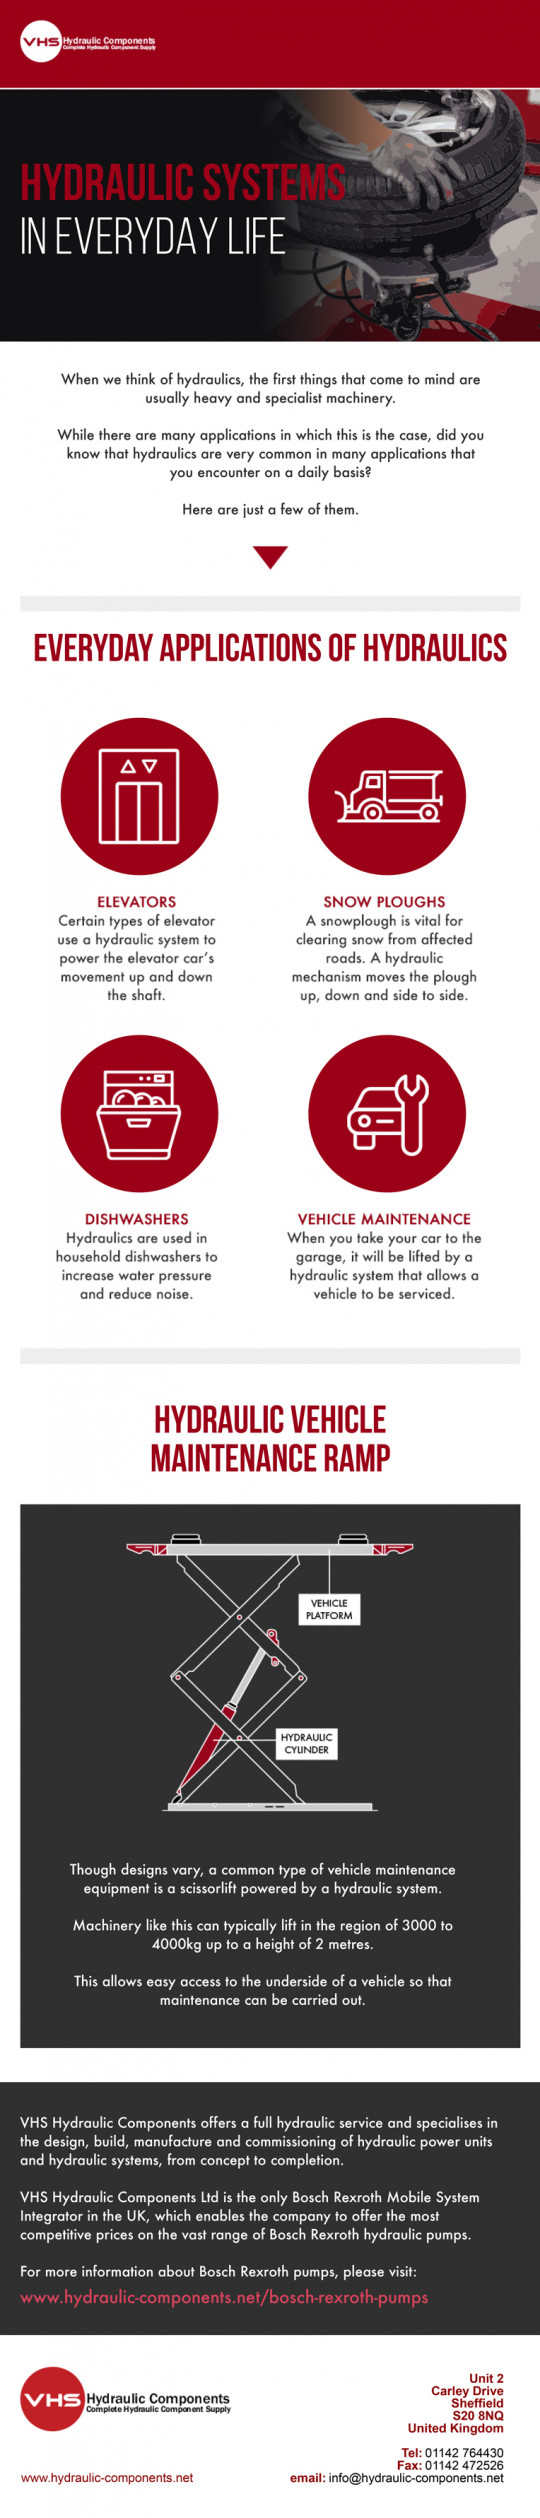 Hydraulic Systems in Everyday Life